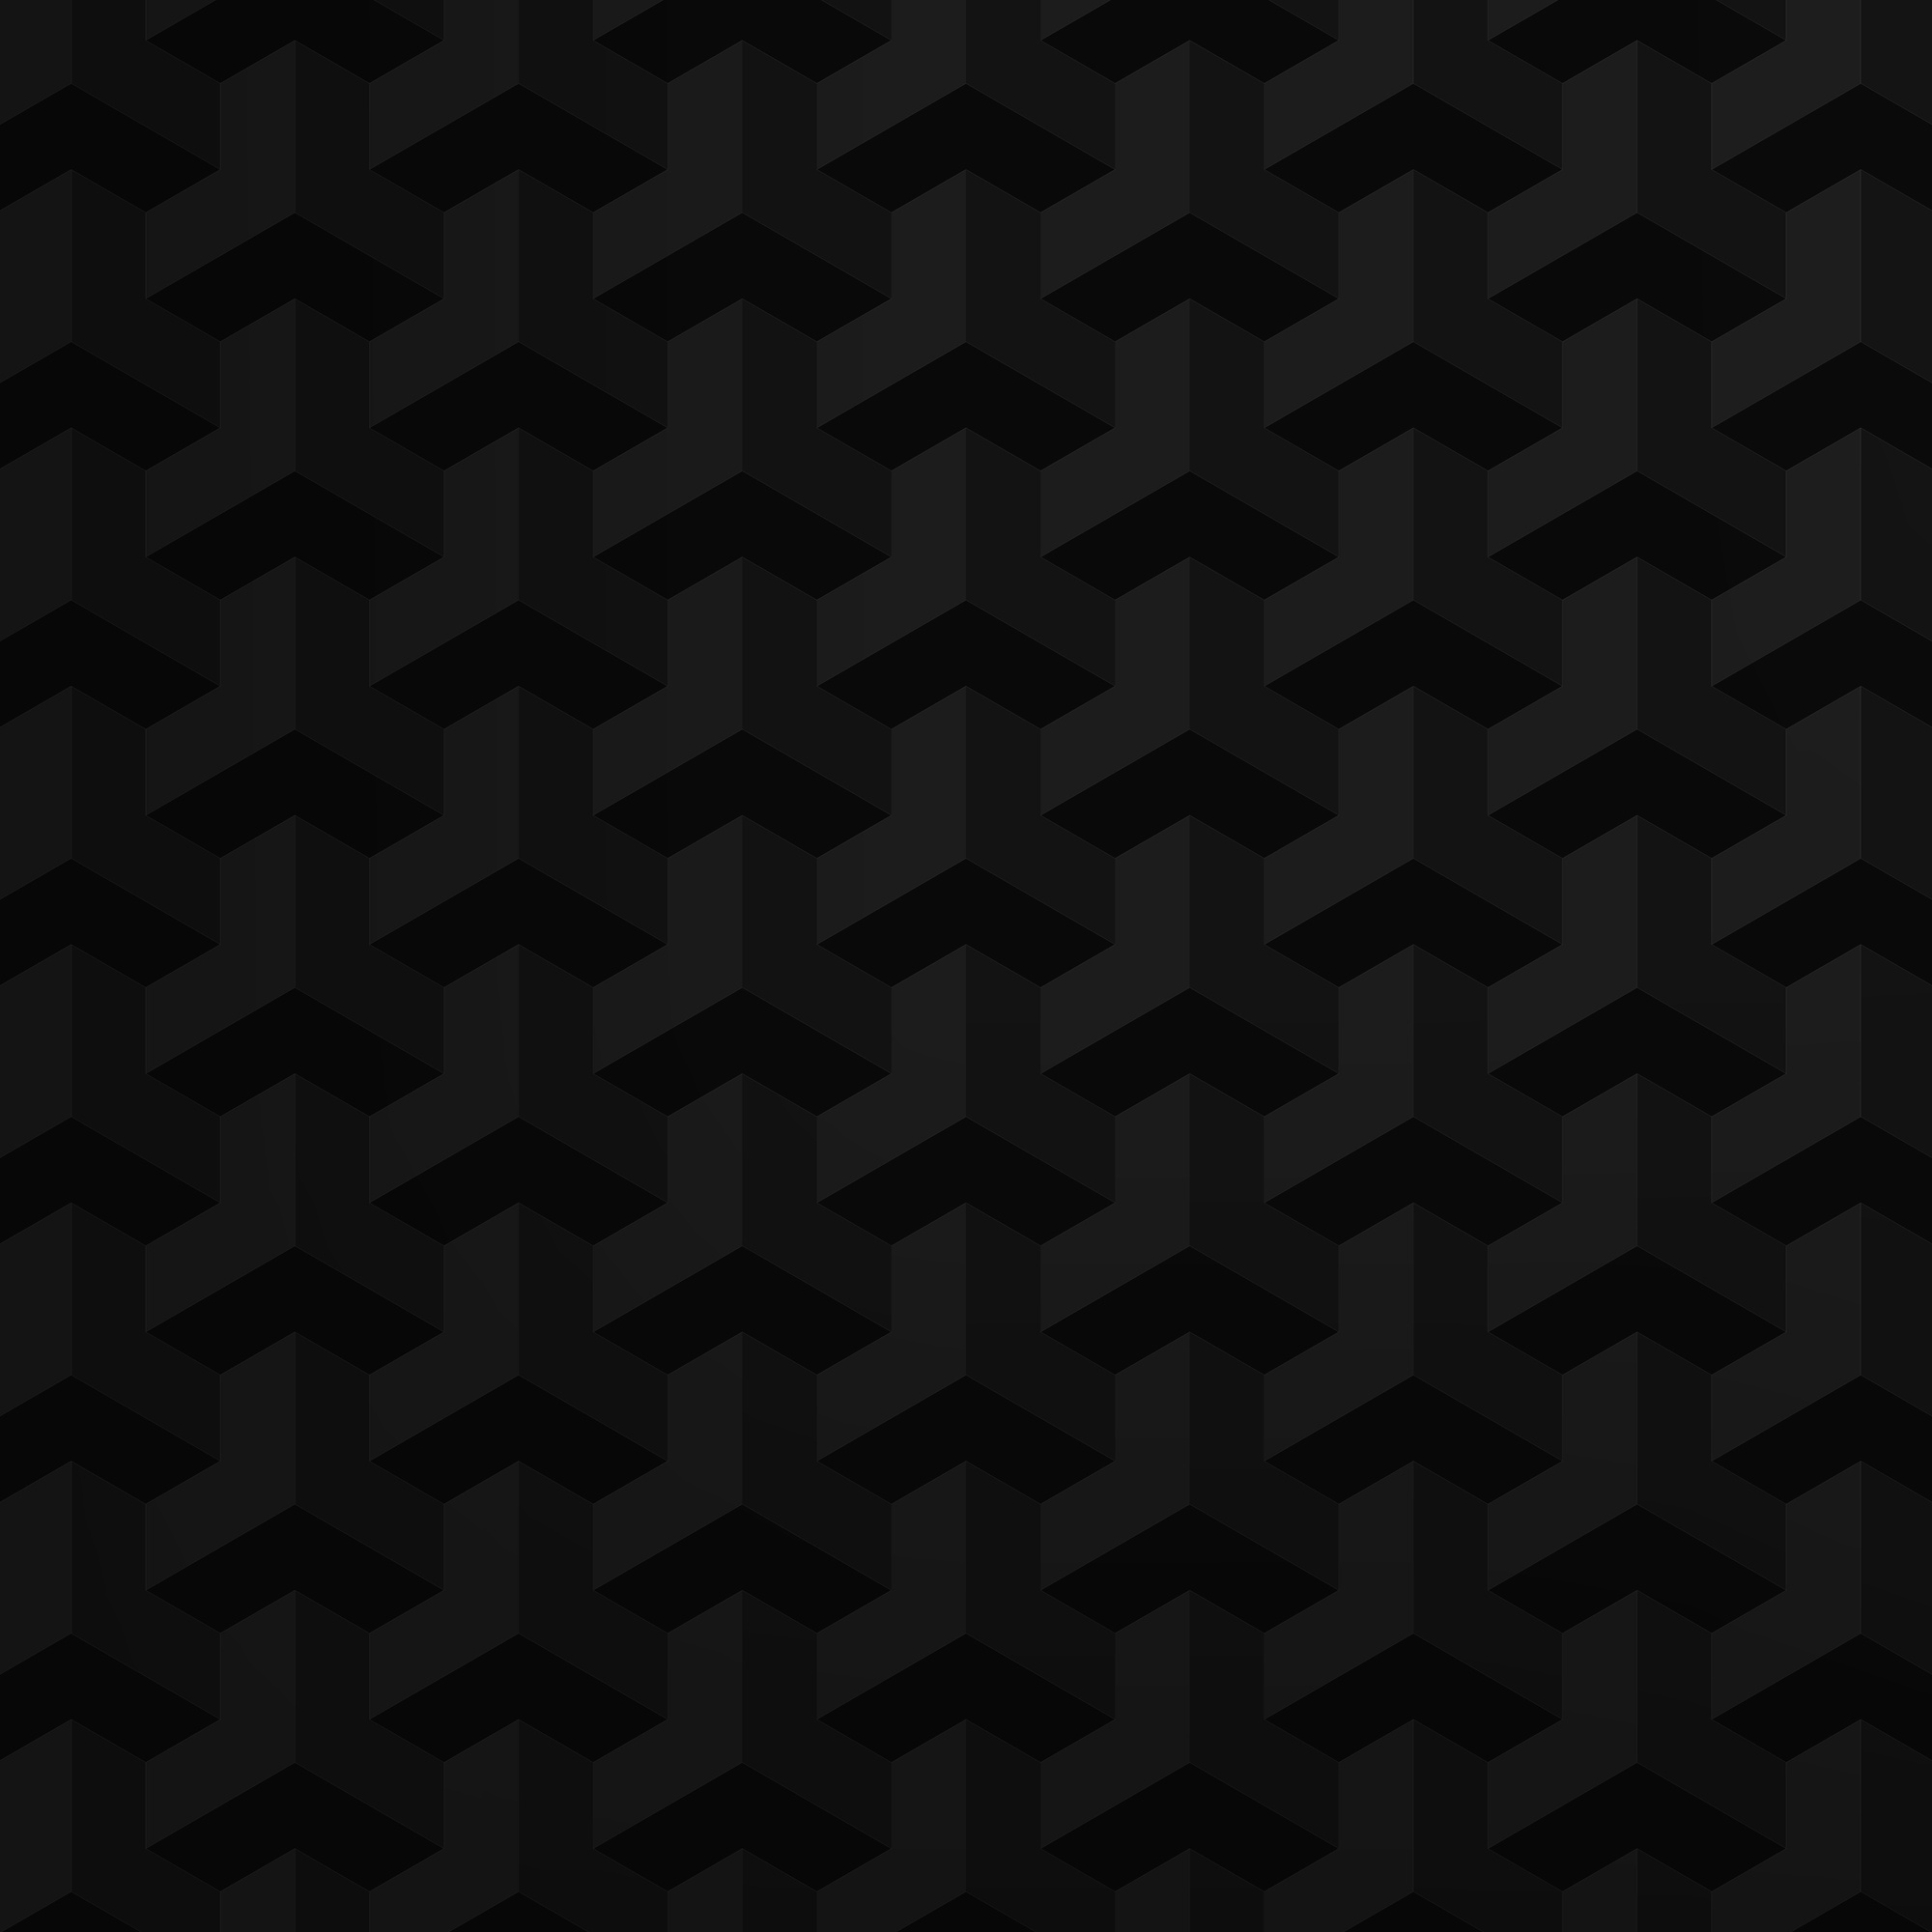 Dark geometric abstract pattern background